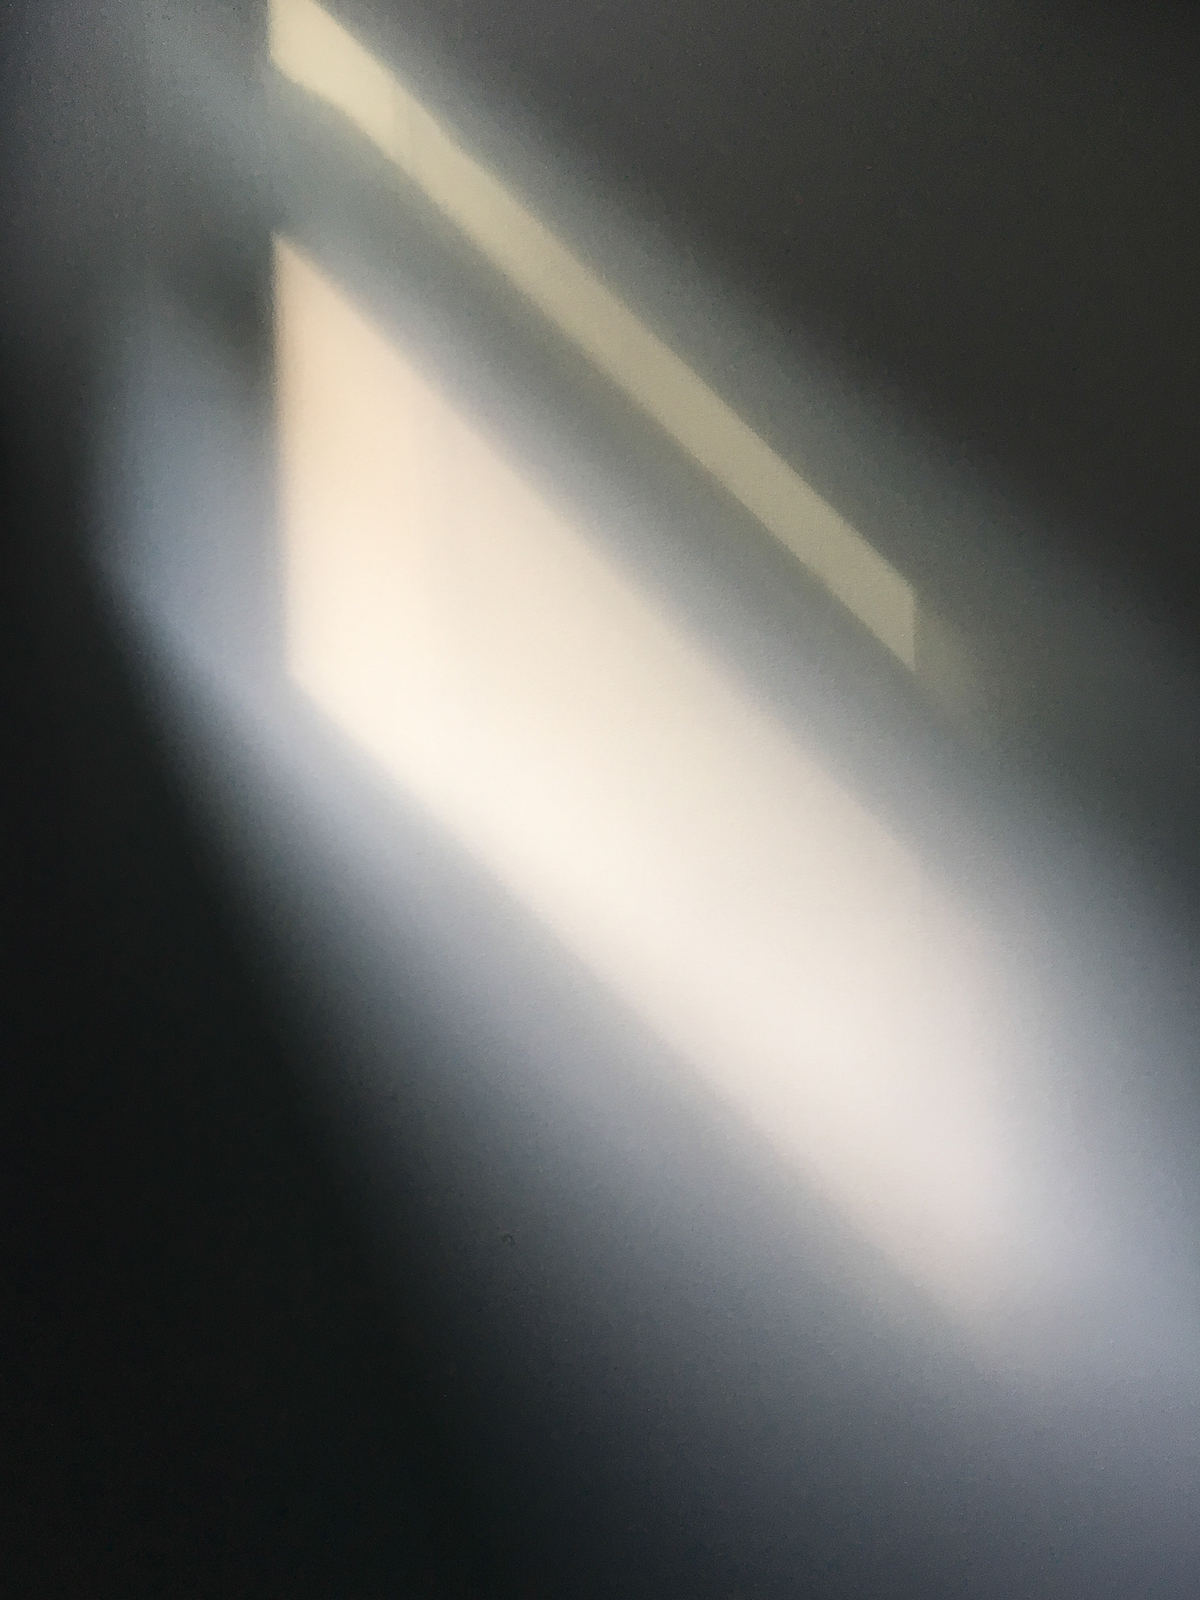 Reflection of light from the window on the wall